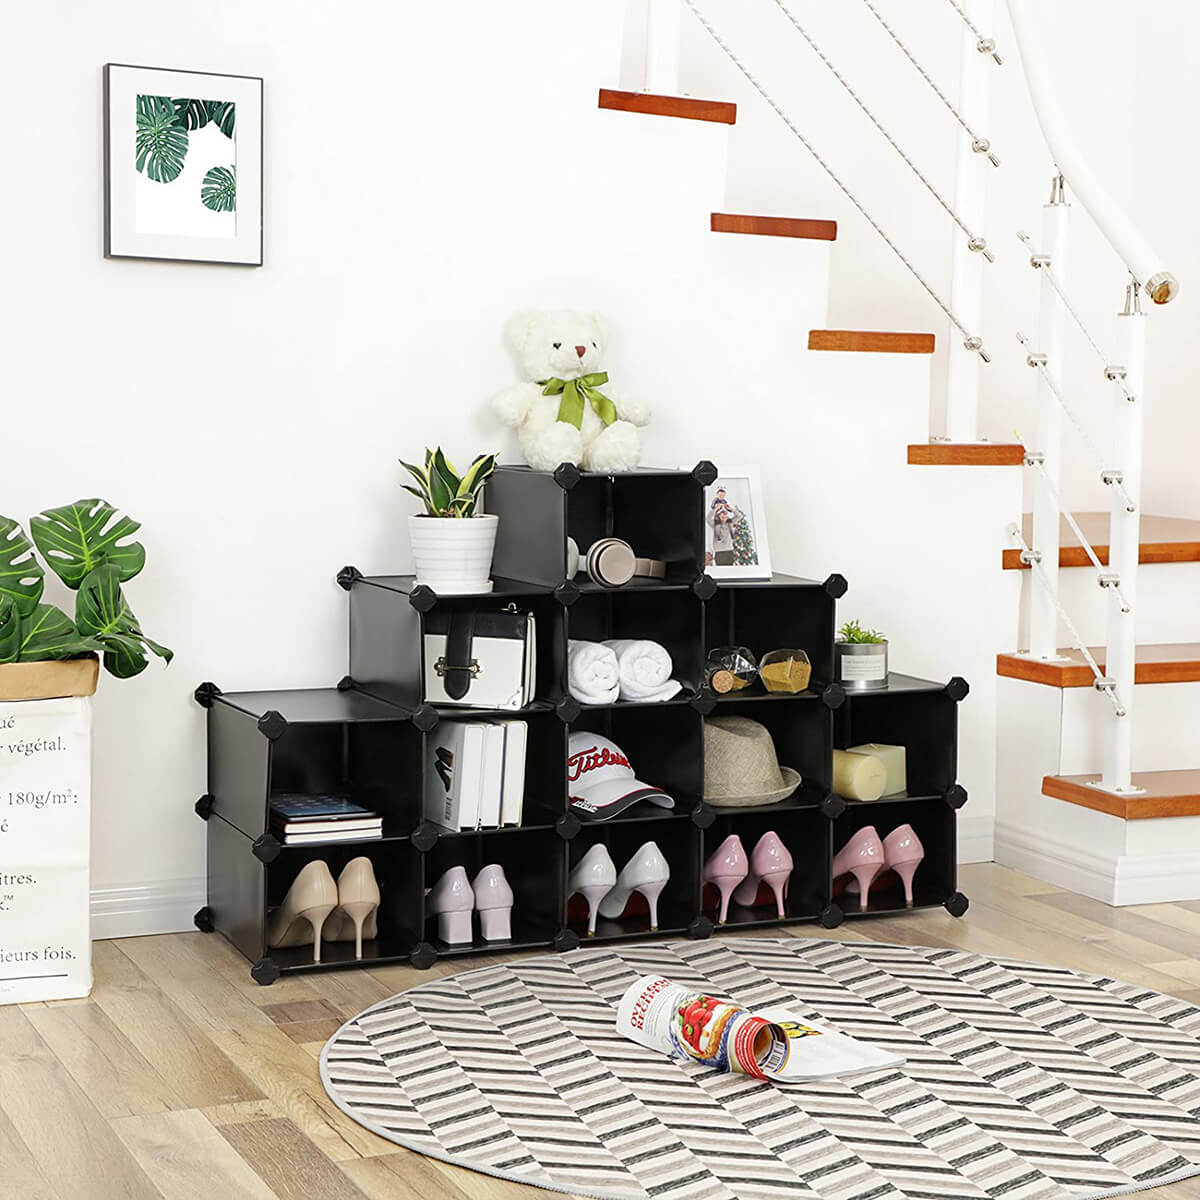 Modular Black and White Shoe Cube System